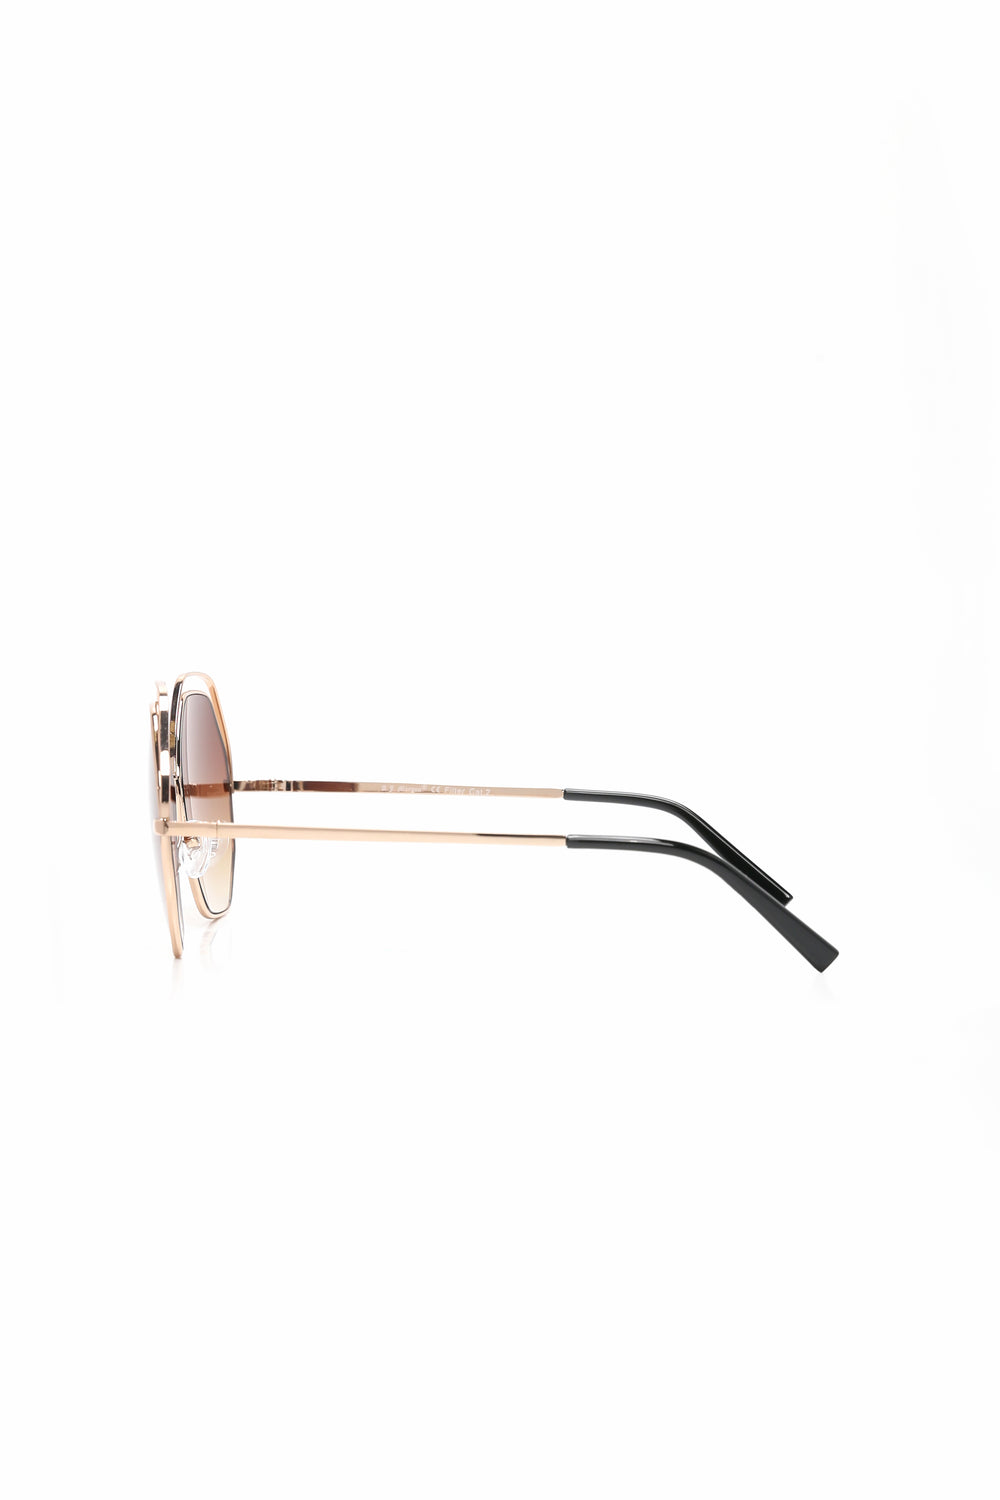 Dreamy Ways Sunglasses - Gold